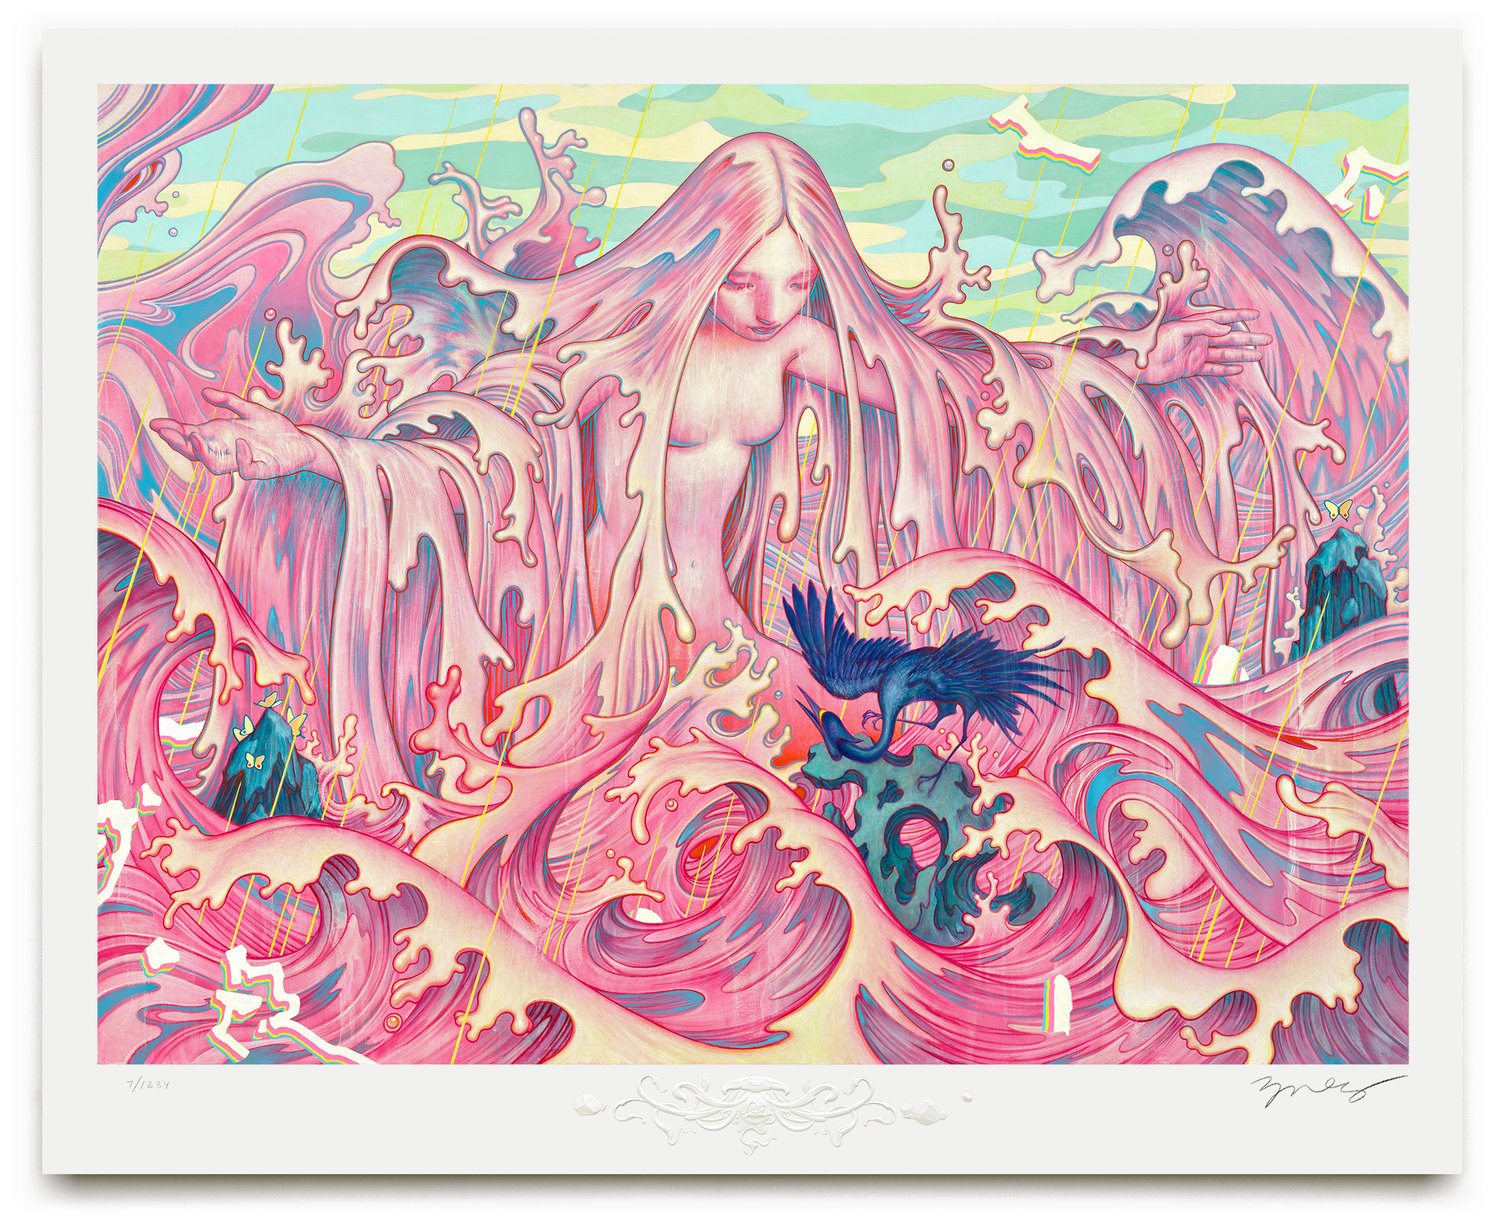 """Adrift II"" by James Jean.  28"" x 22.5"" Giclee.  Timed edition S/N.  $200"